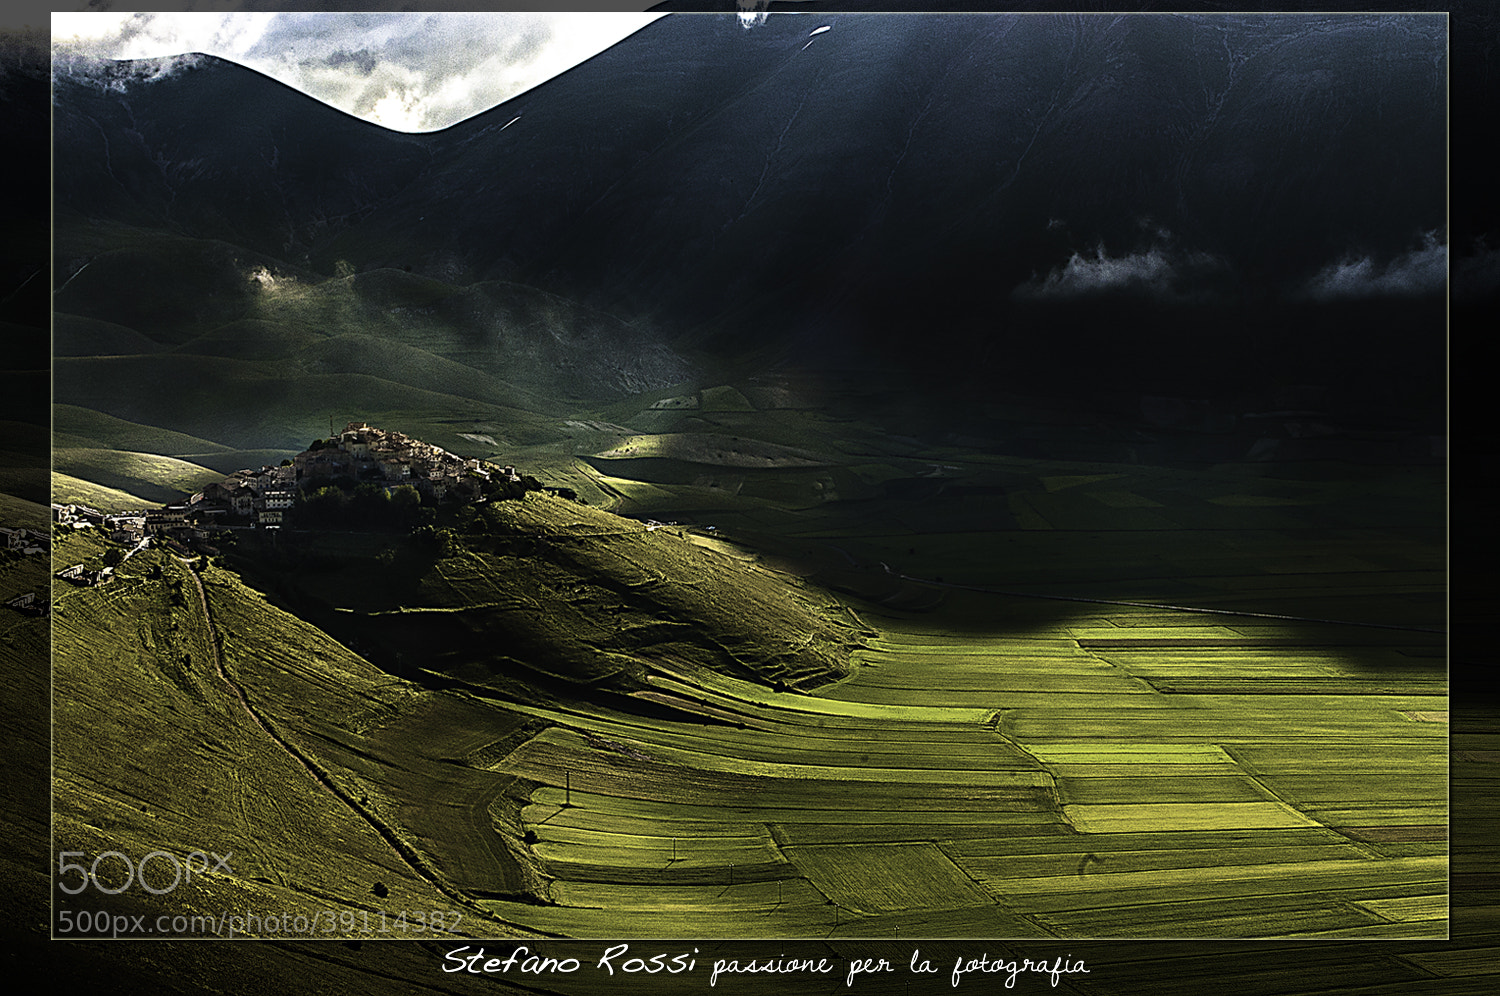 Photograph Castelluccio di Norcia by Stefano Rossi on 500px